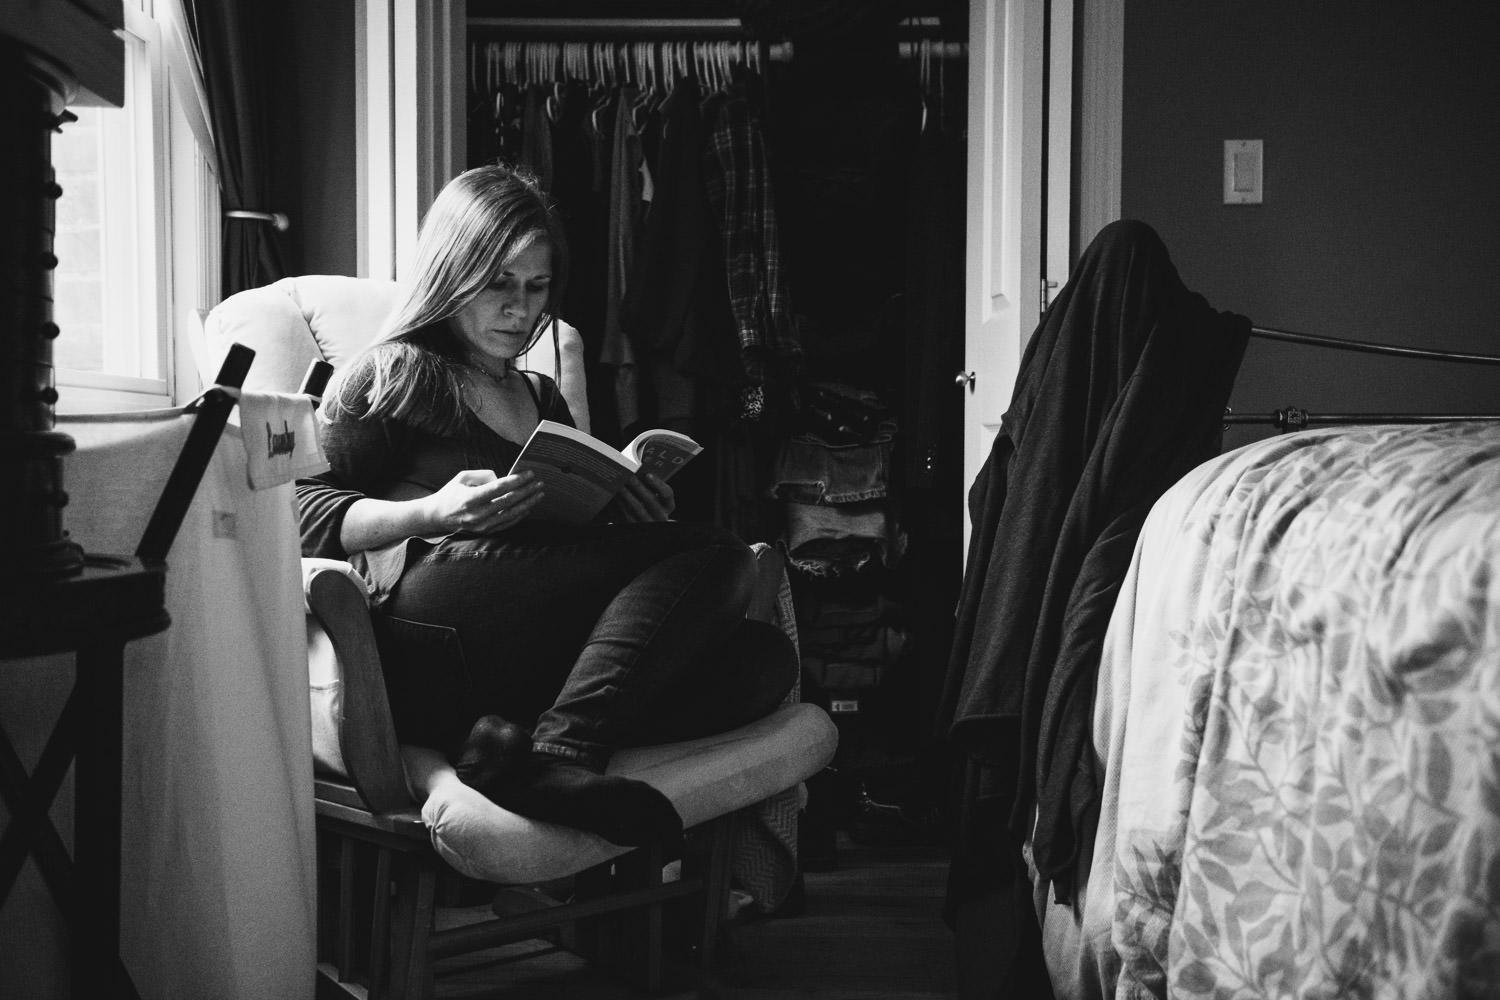 A woman reads a book in a rocking chair in her bedroom.